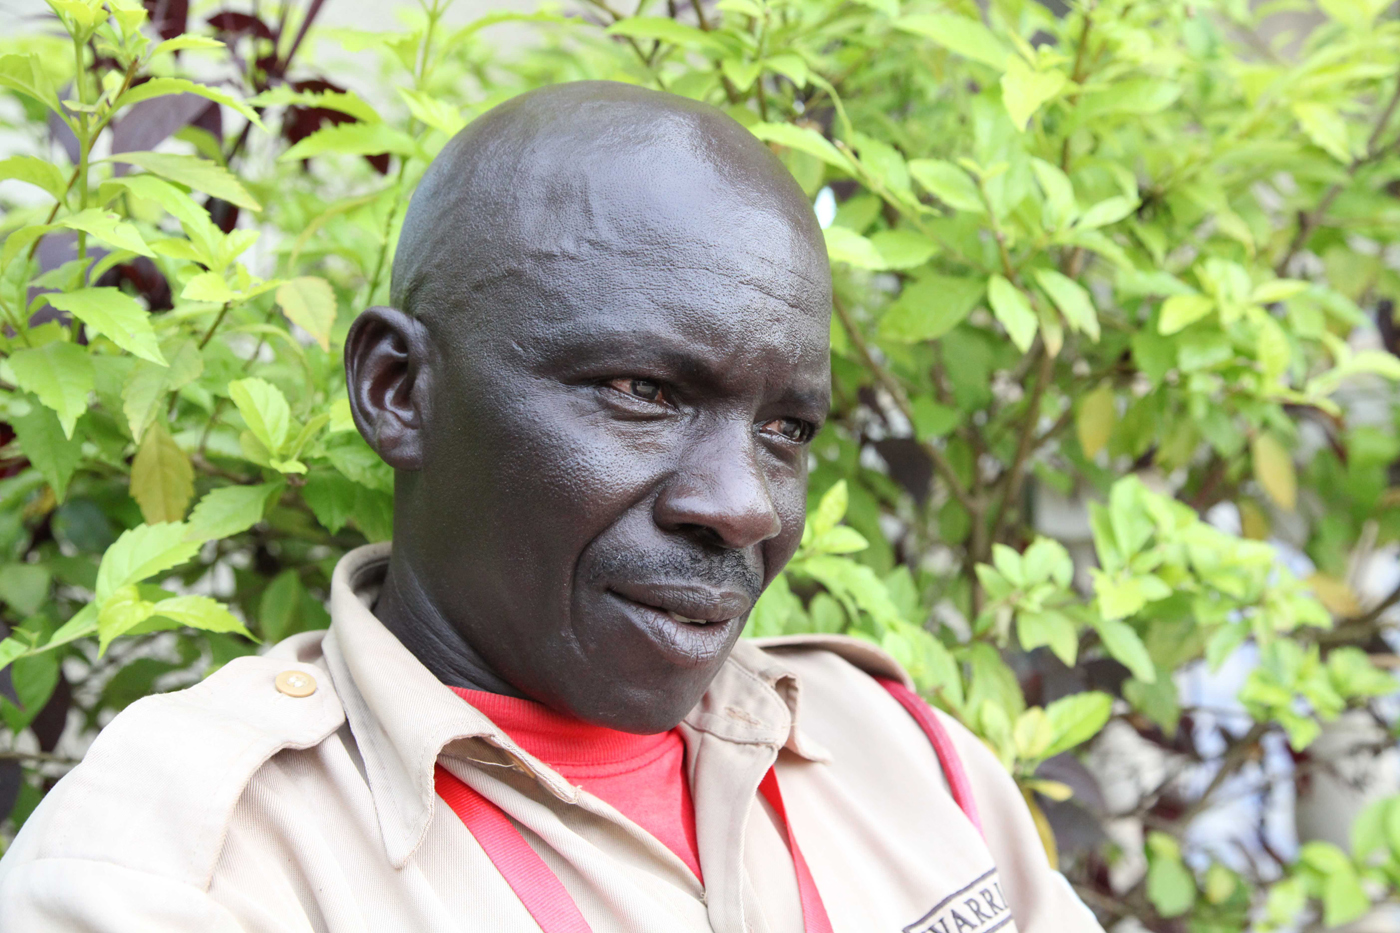 Chaplain Paul – security guard, South Sudan